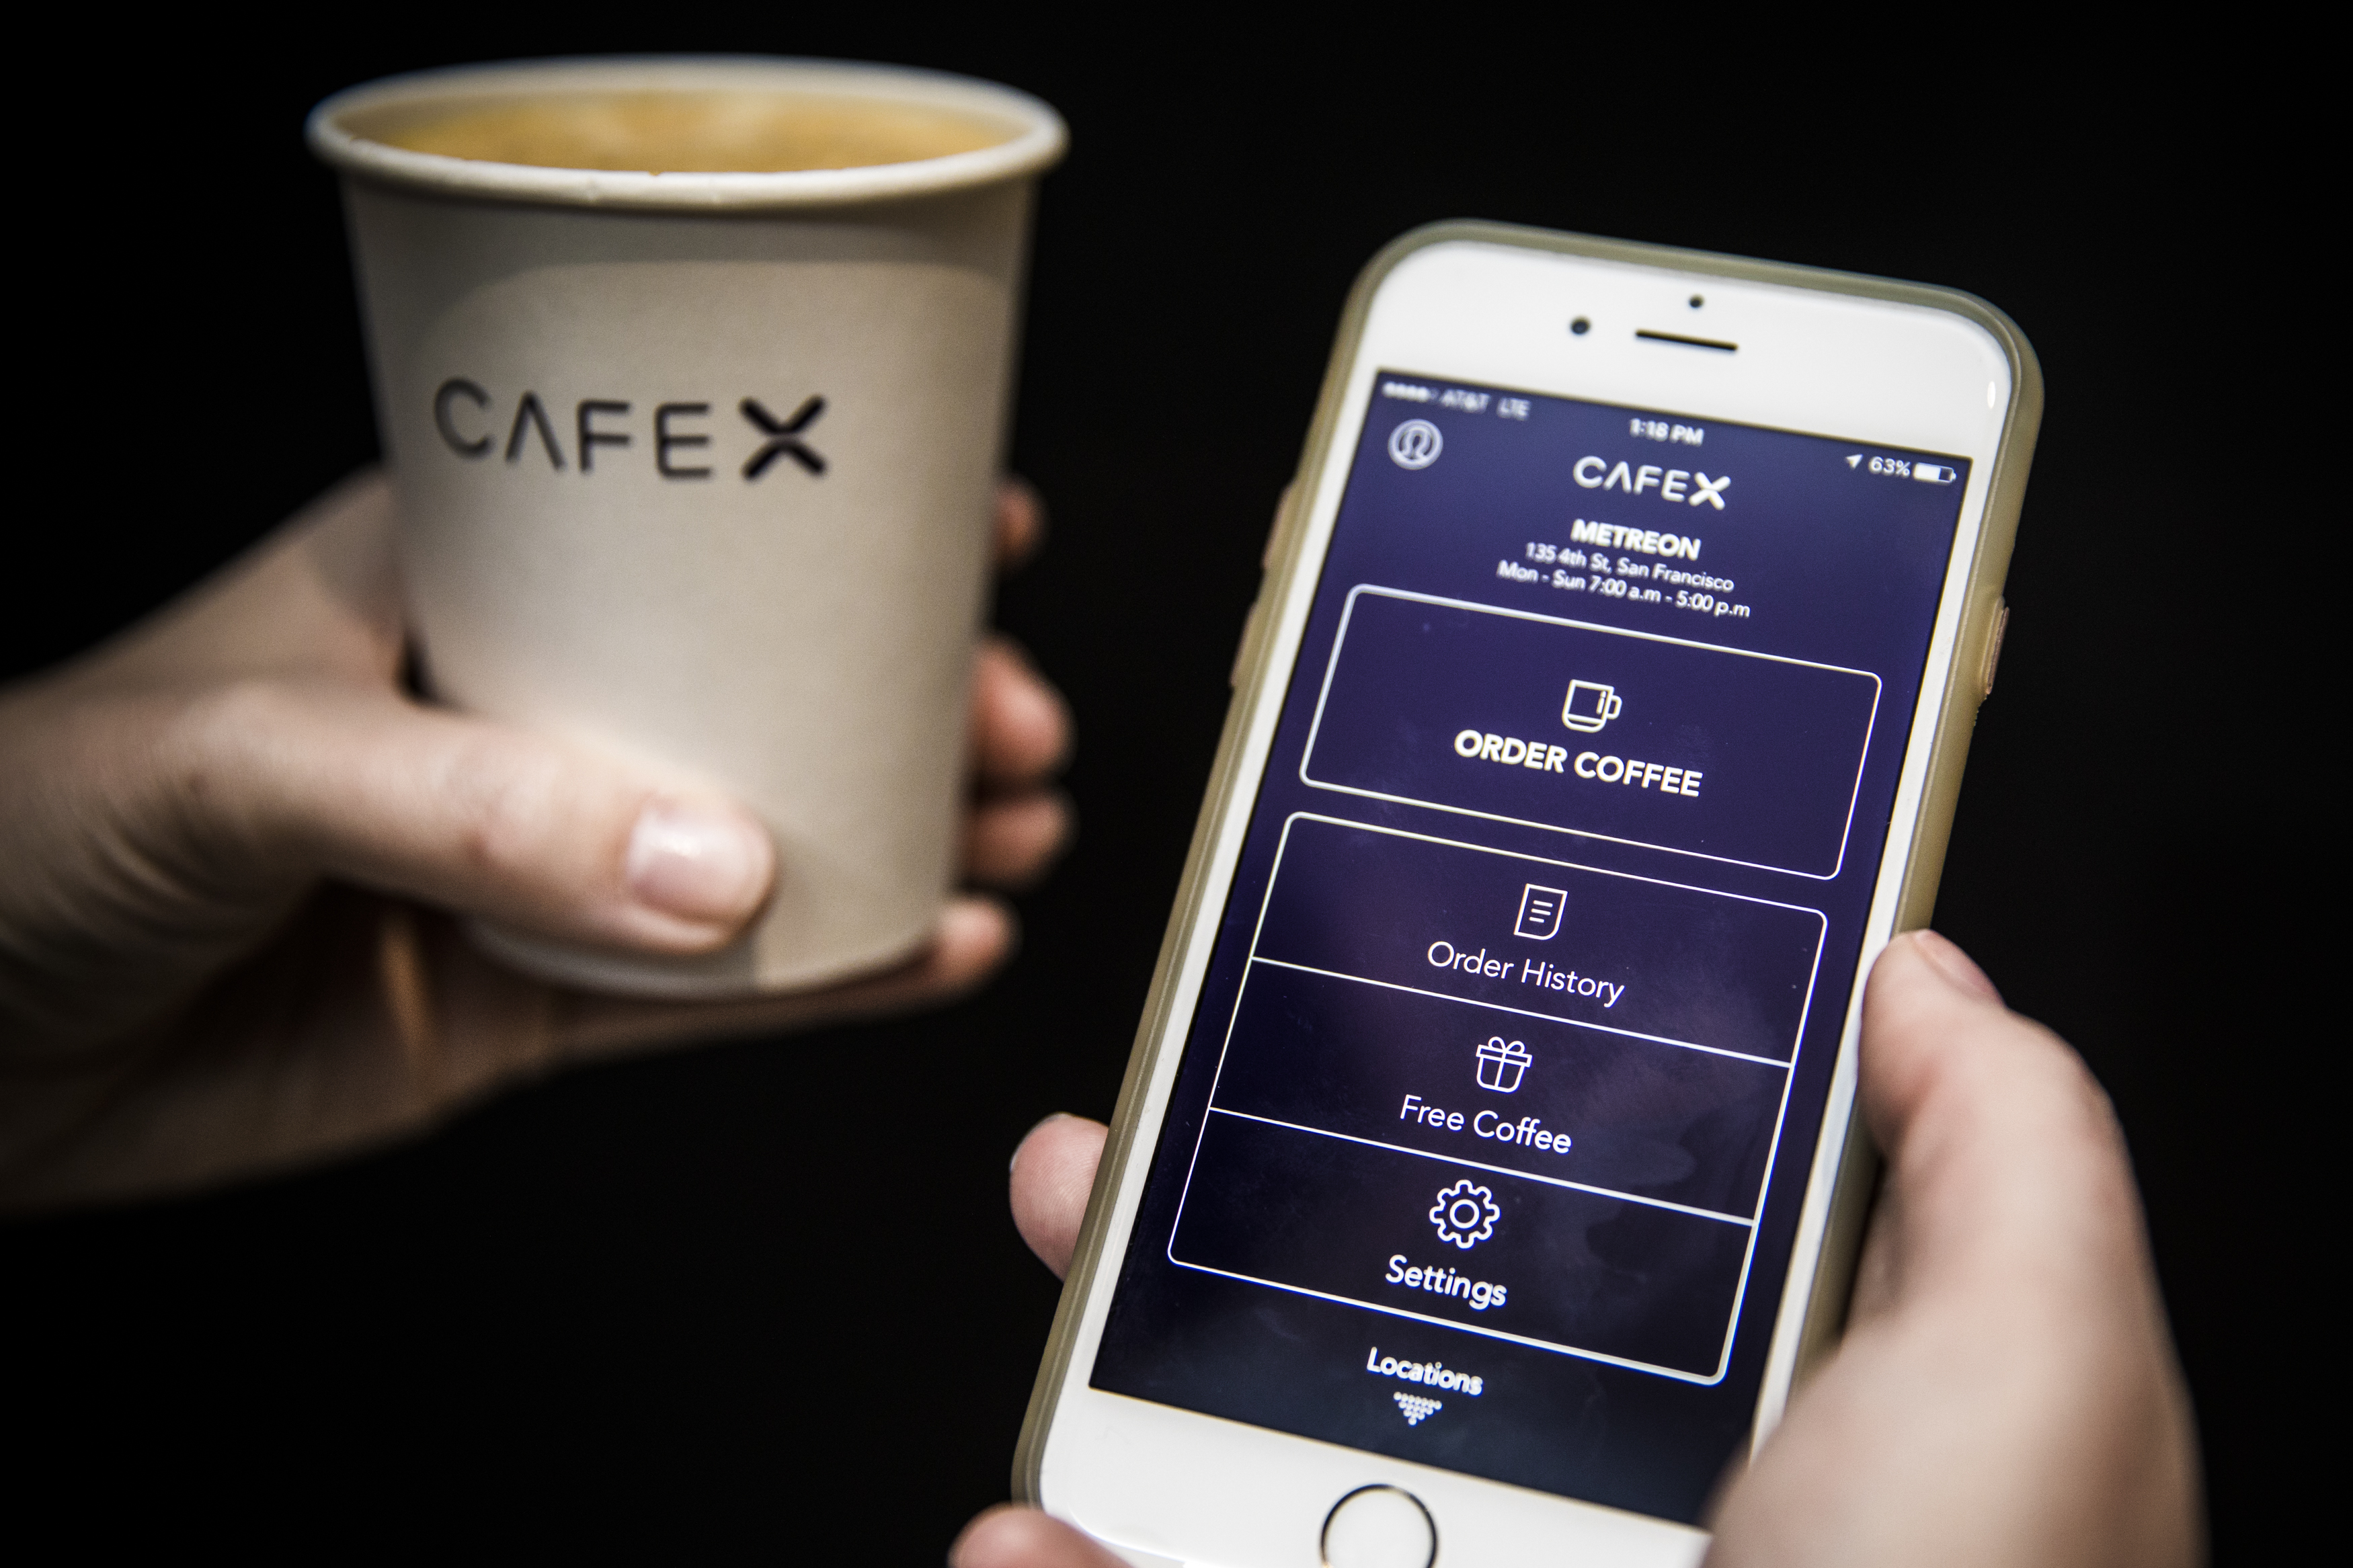 You order Cafe X coffee with an app or a tablet at the cafe.